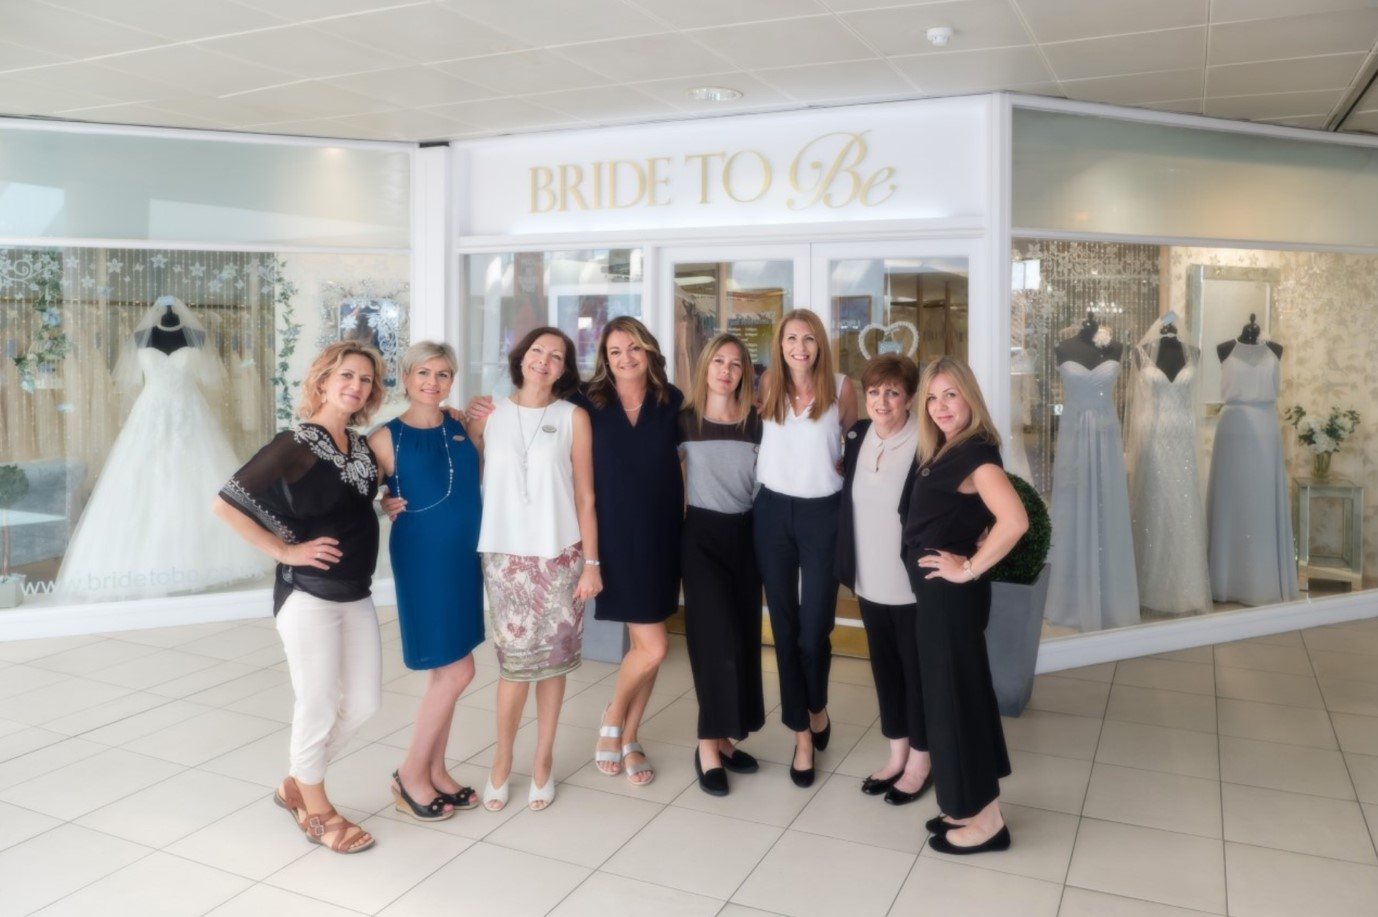 The Bride to Be team